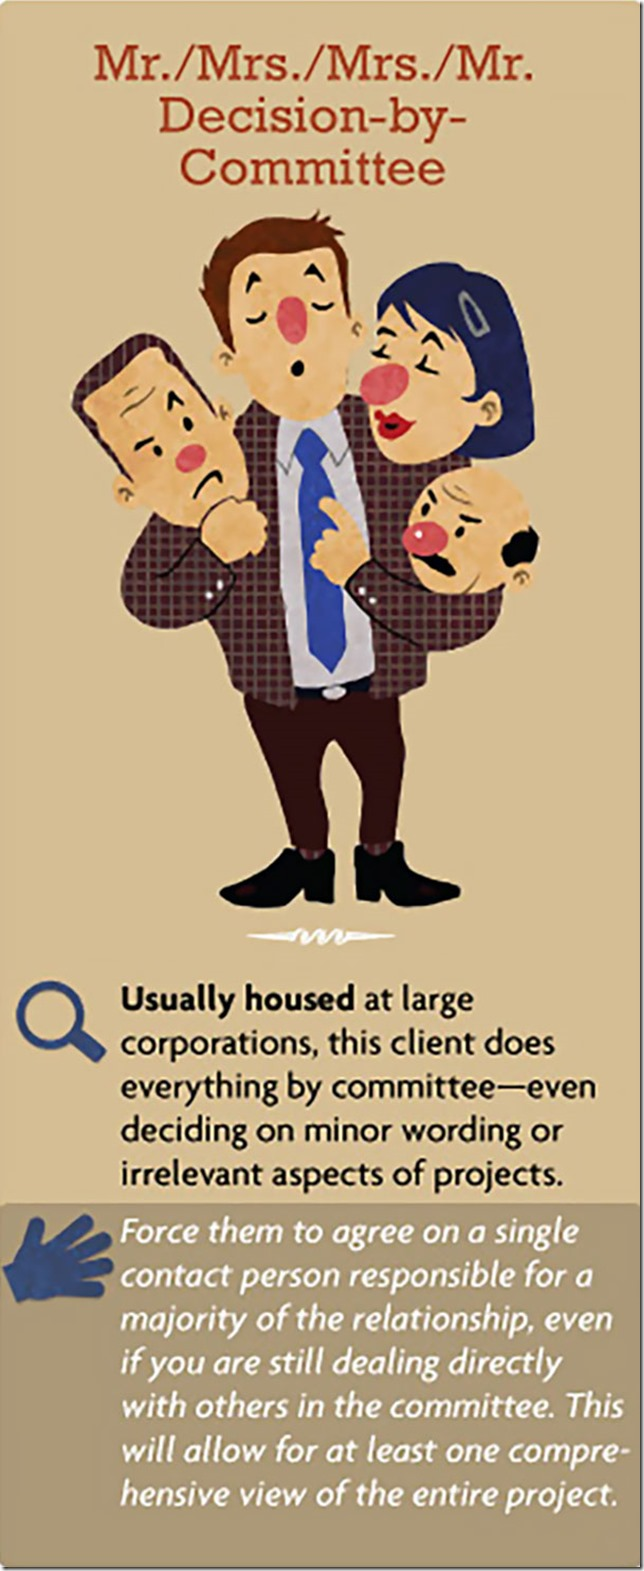 how-to-handle-types-of-clients-guide-infographic-13-597f40ae